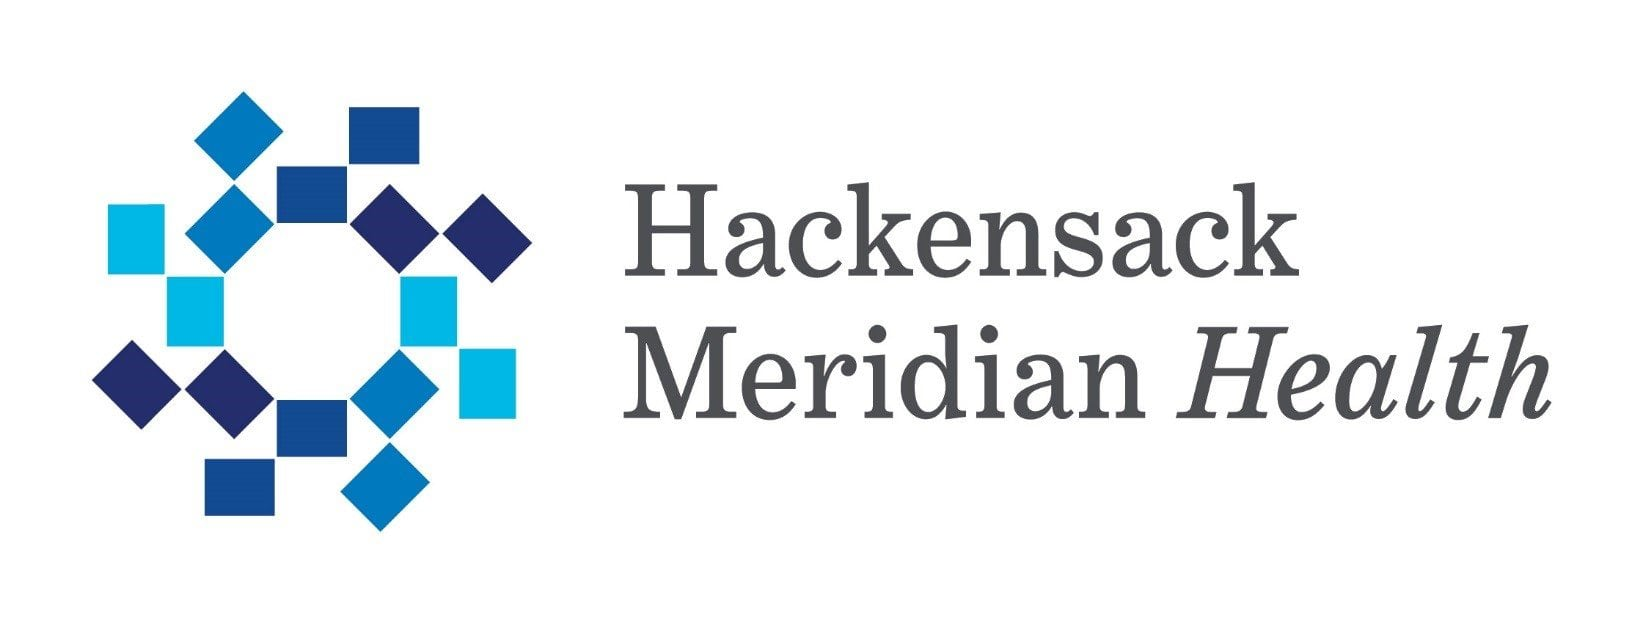 Hackensack Meridian Health opens first COVID-19 recovery center in New Jersey